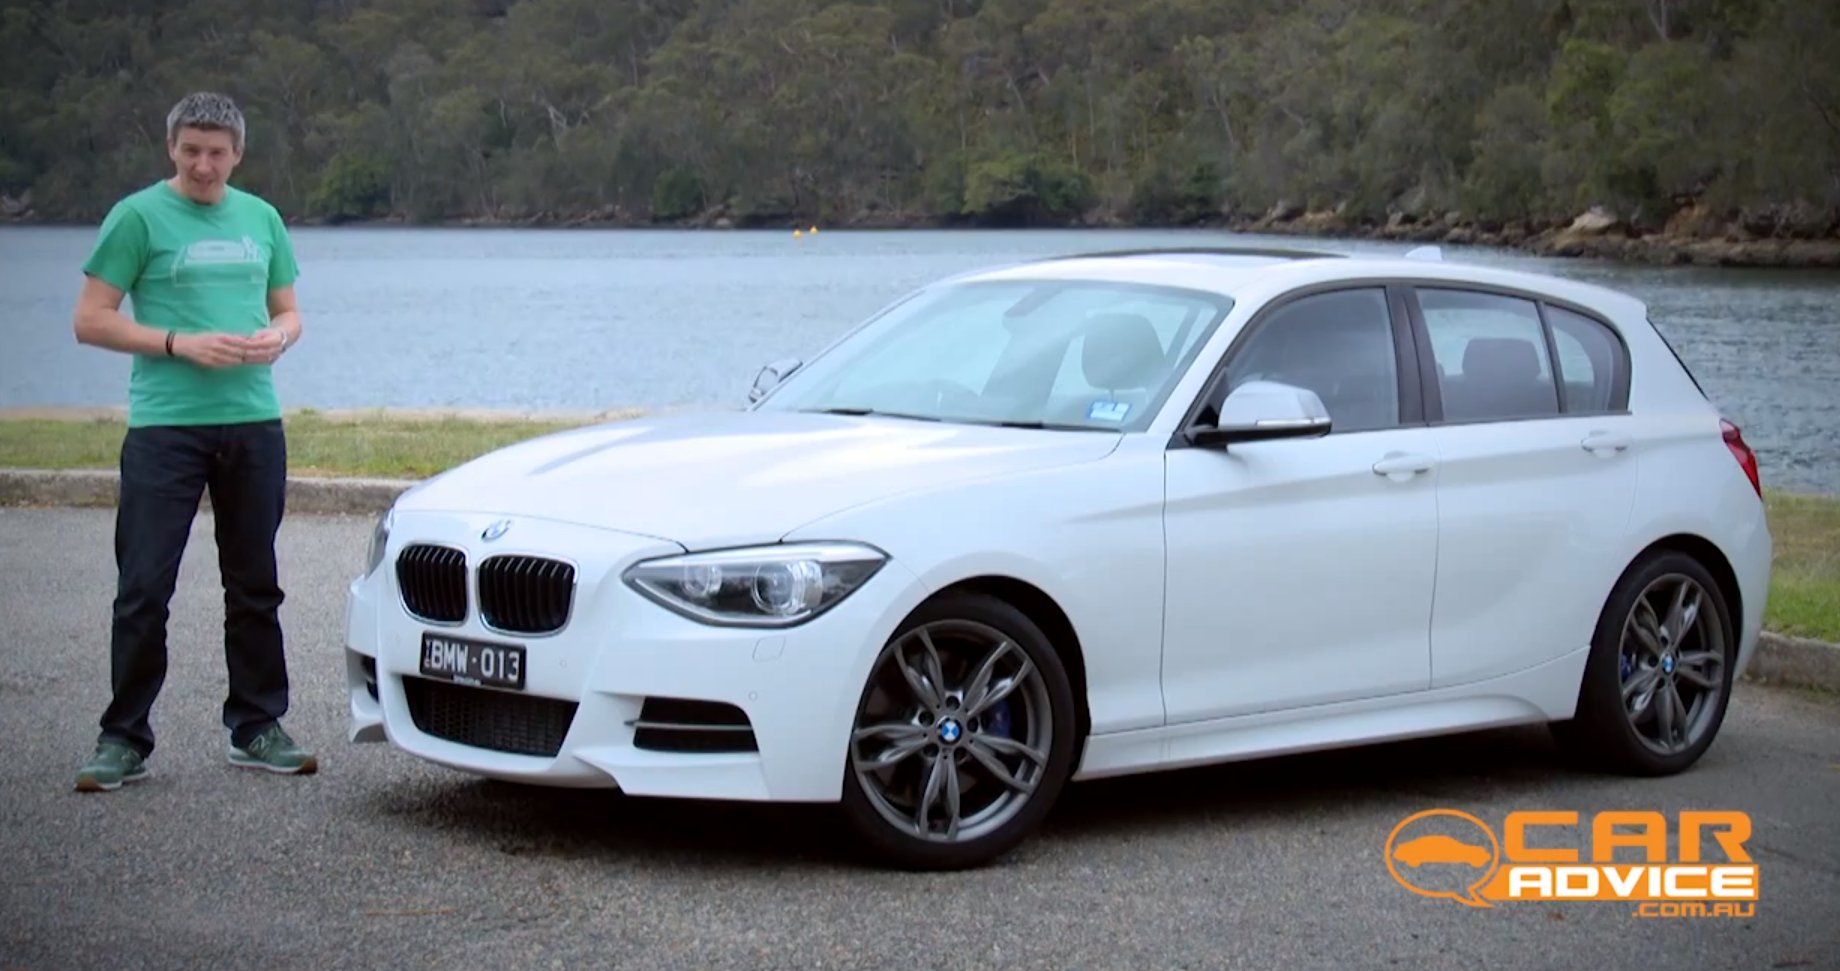 Bmw f20 m135i review by car advice autoevolution 6 photos asfbconference2016 Images